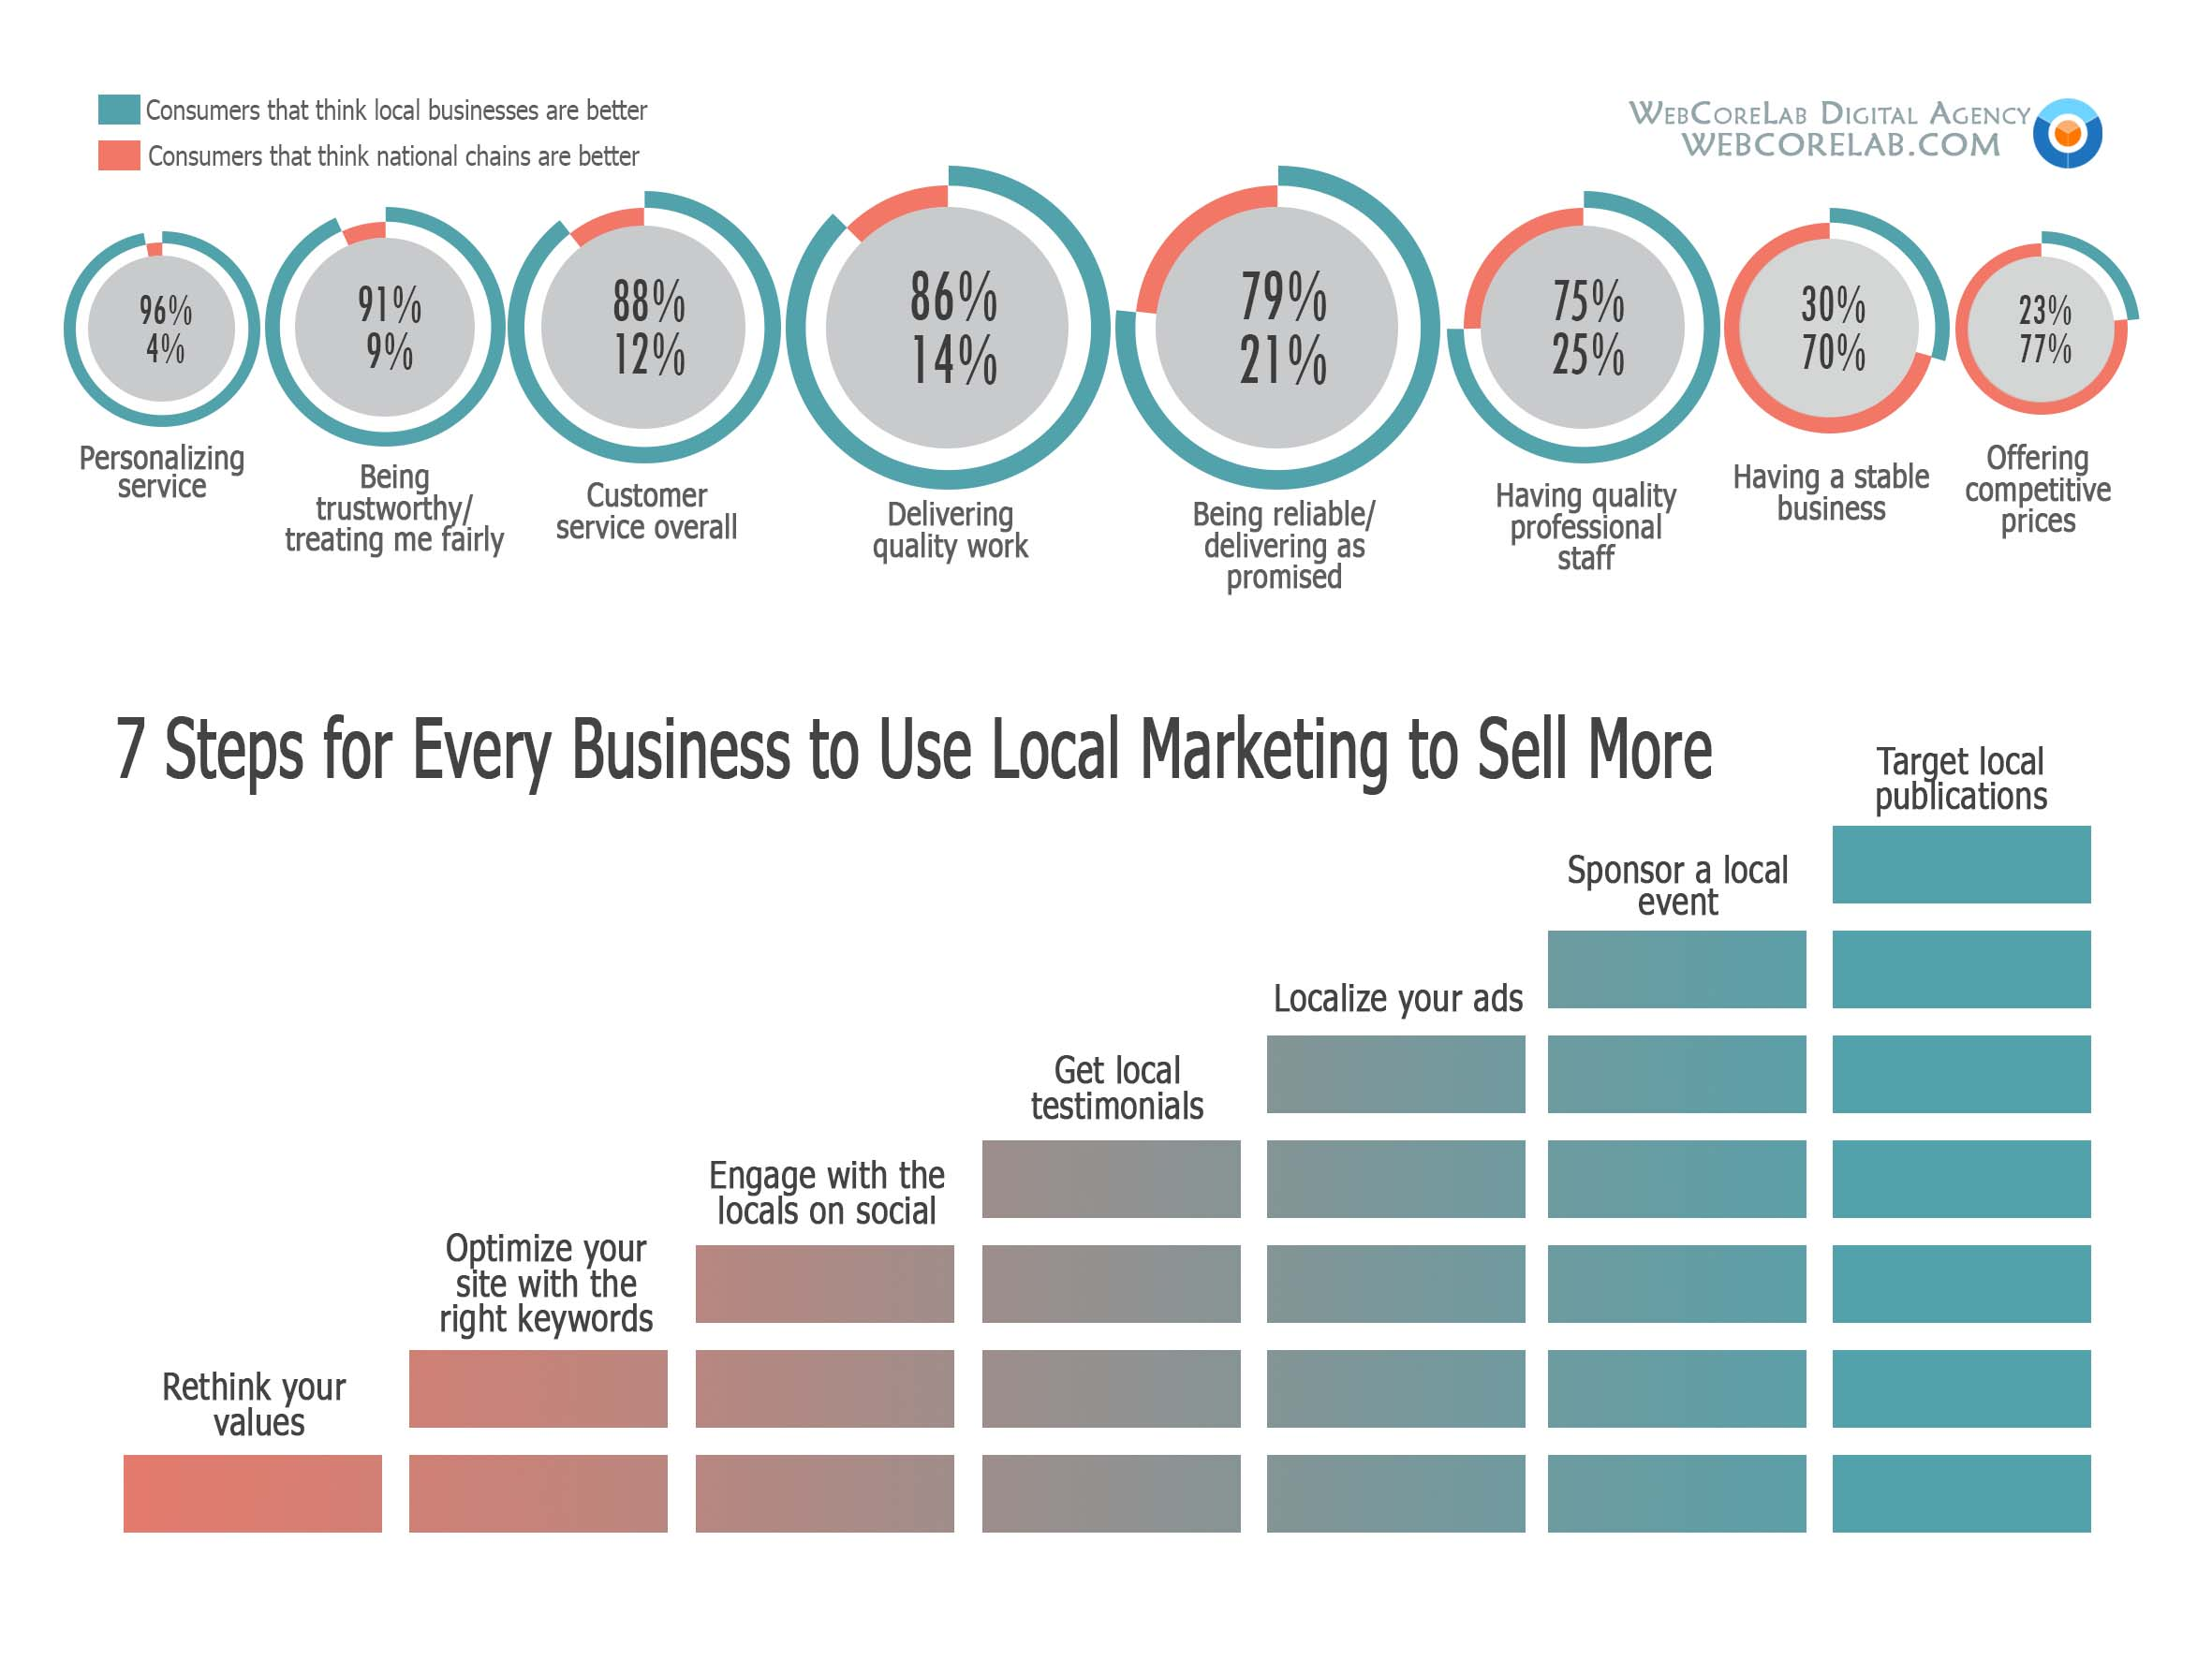 7 steps to use local marketing to sell more